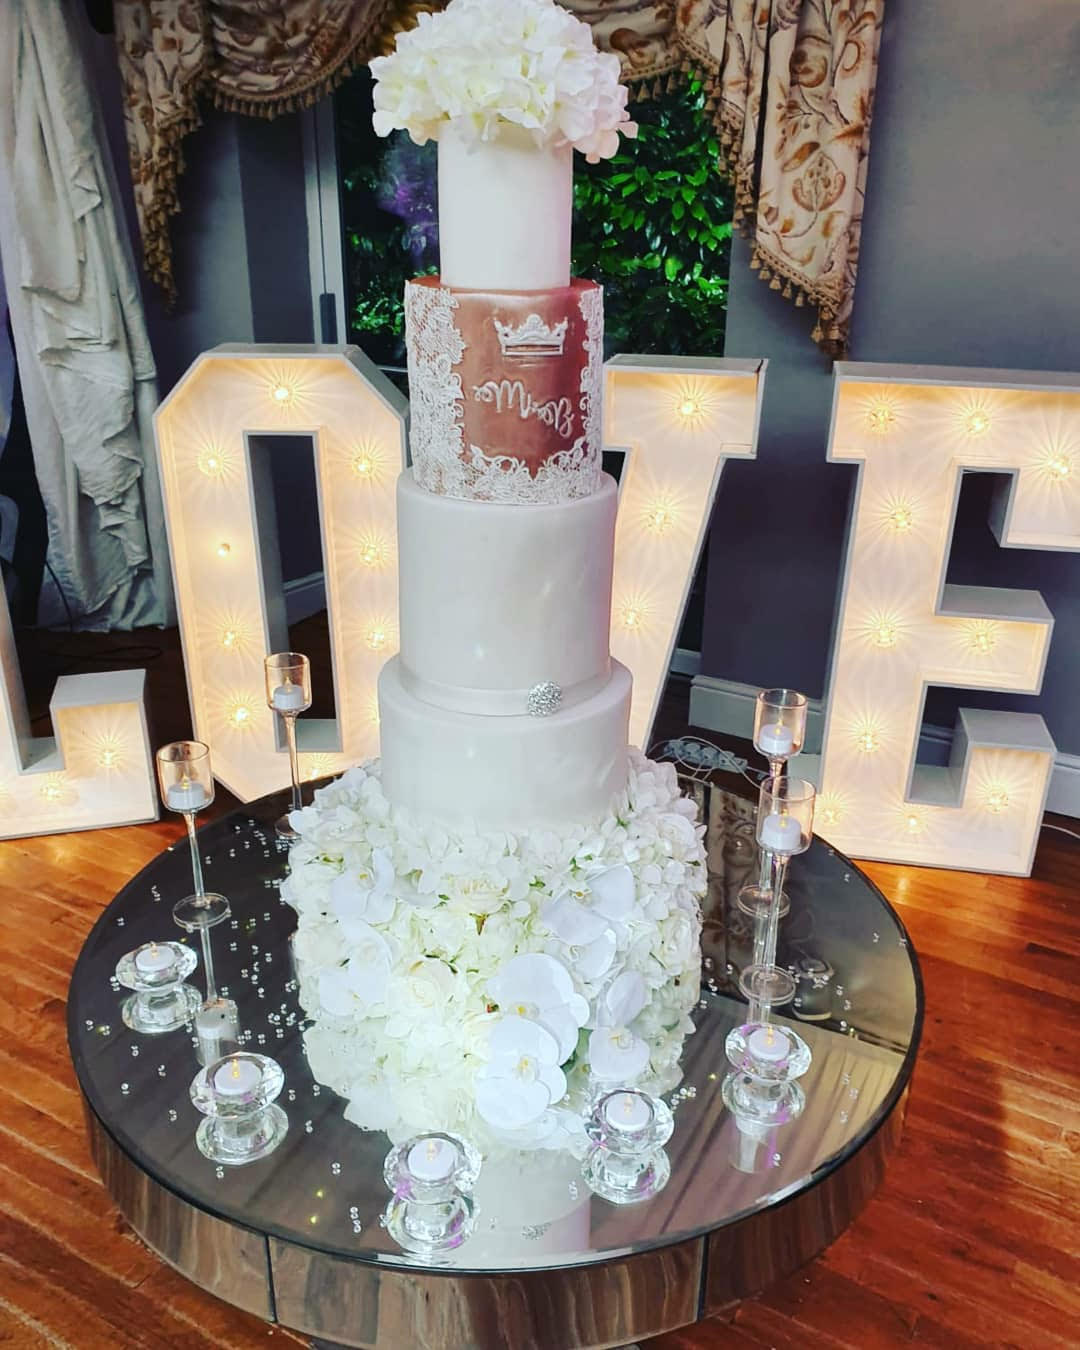 Jarvis Amour Black Luxury Wedding Planner Manchester provides Wedding Cake bases